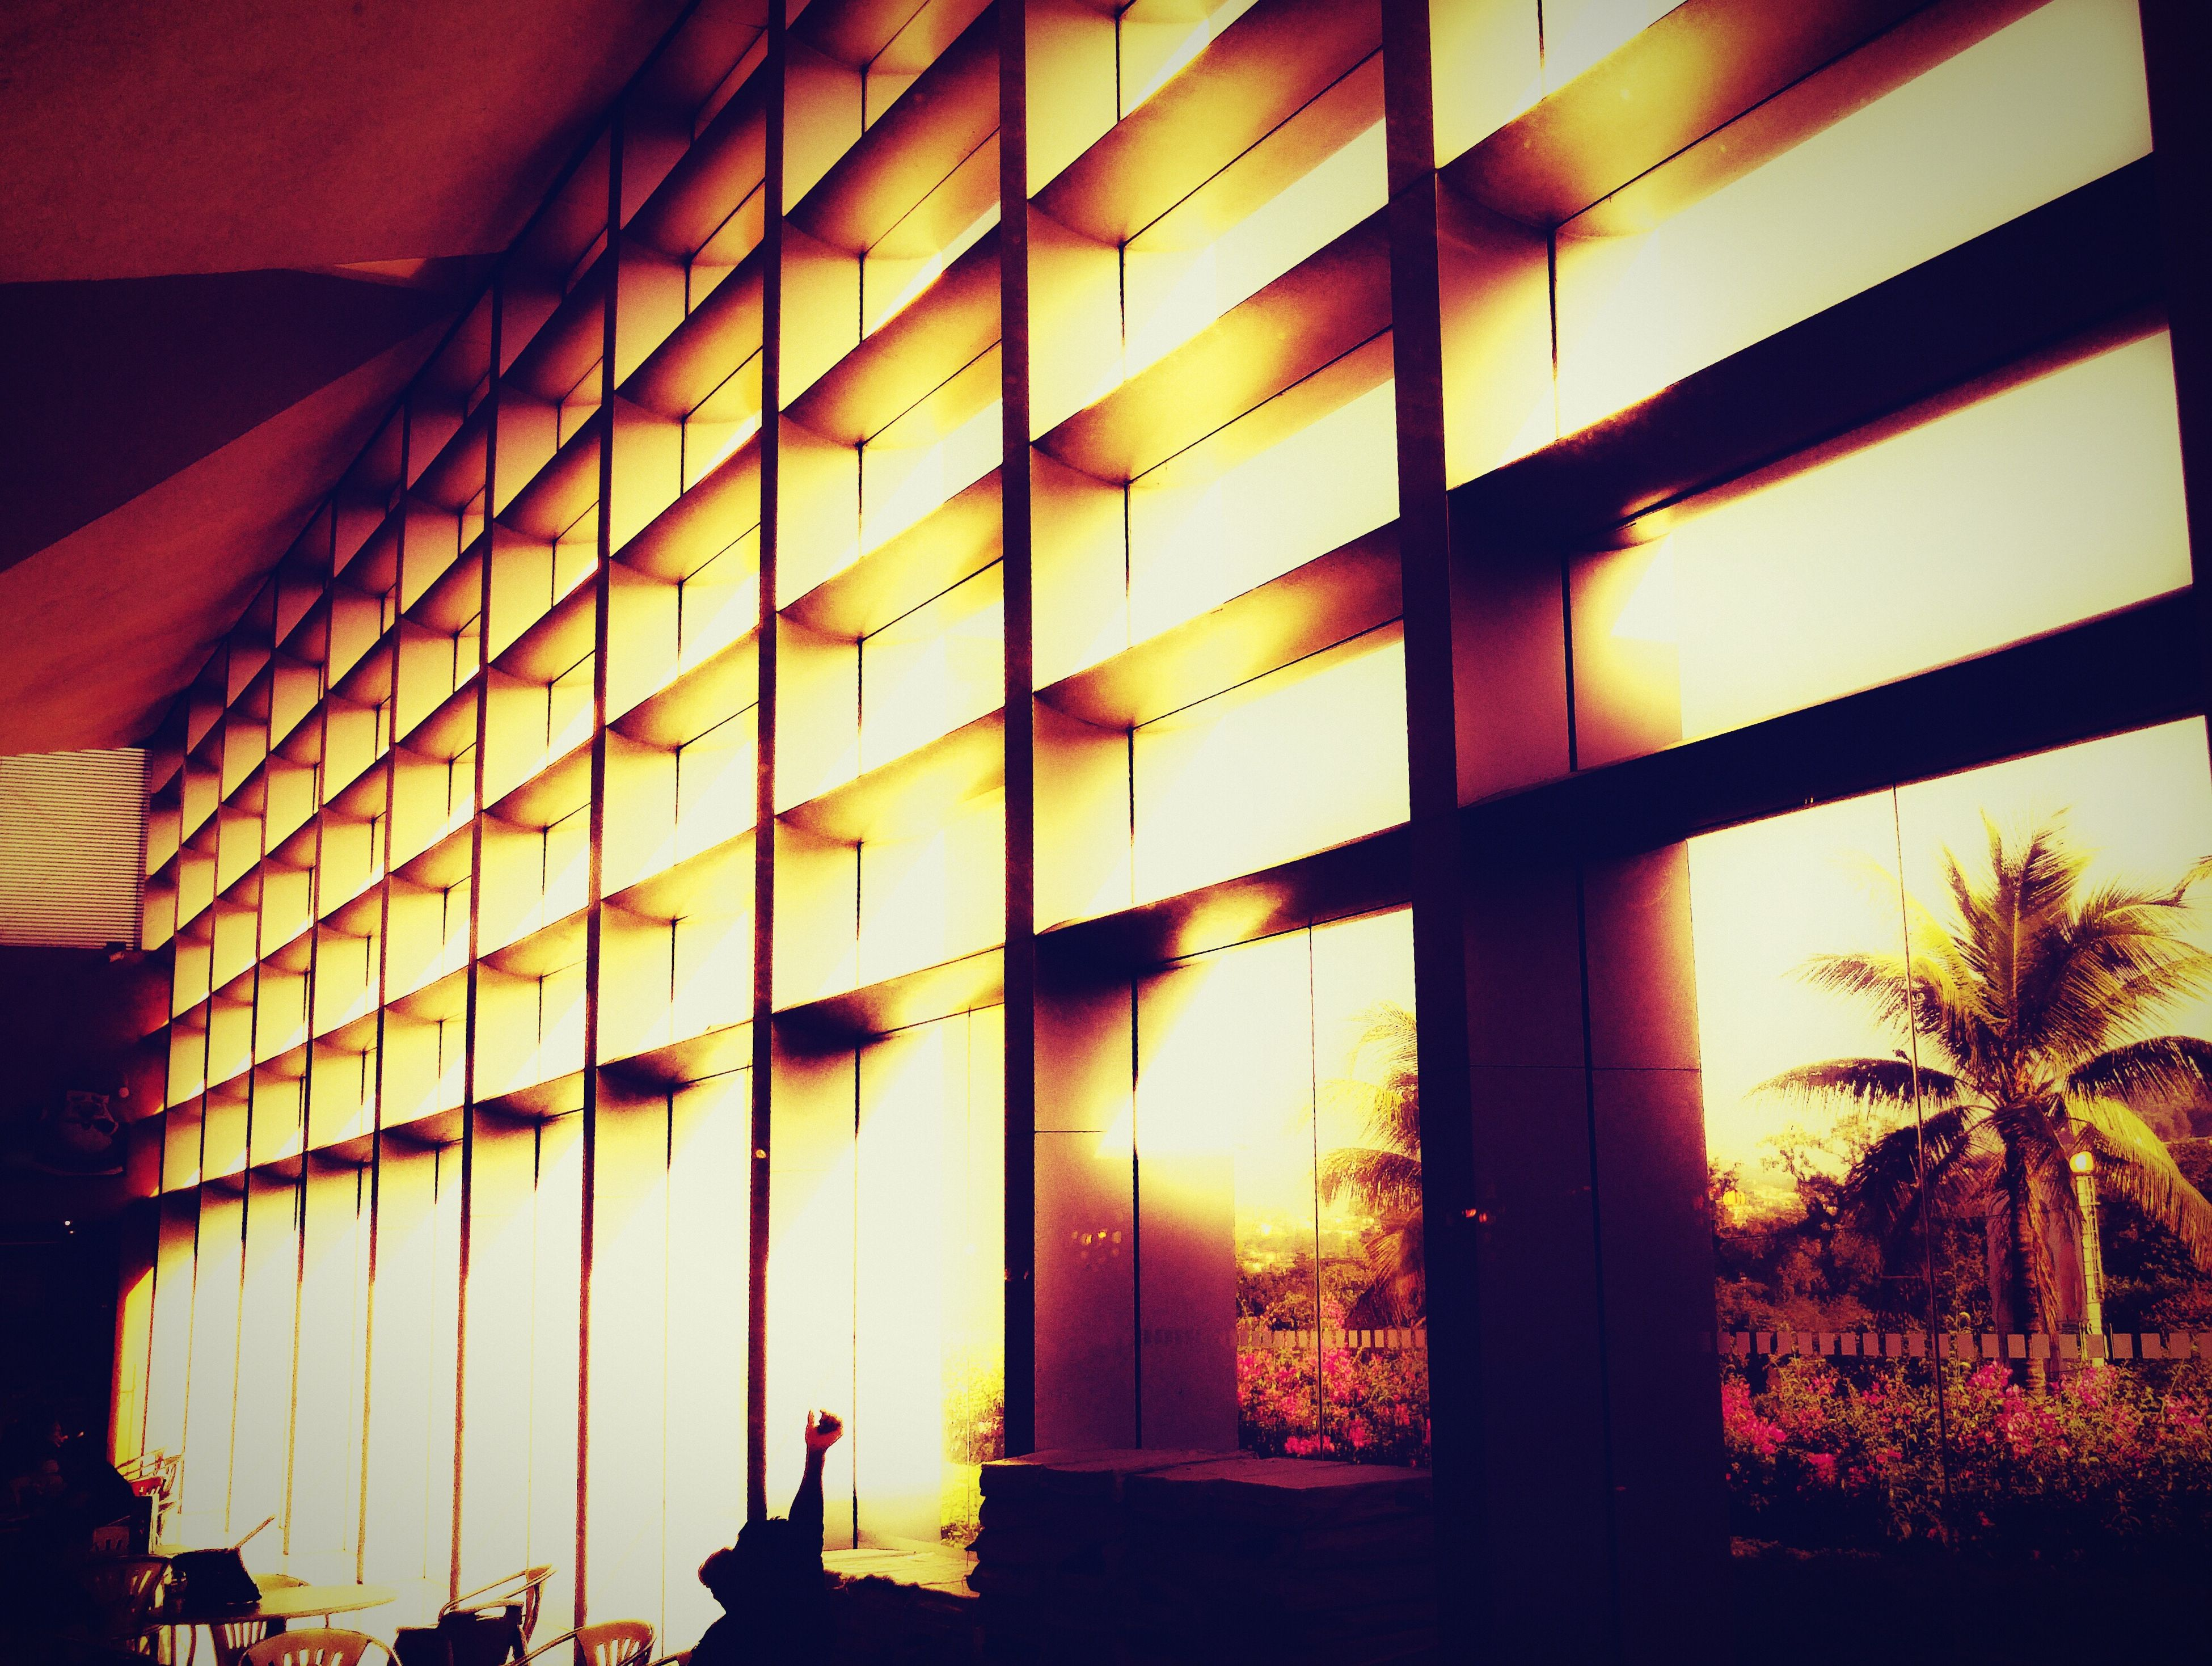 architecture, built structure, sunset, building exterior, window, orange color, illuminated, low angle view, sunlight, indoors, sun, building, house, no people, glass - material, sunbeam, lens flare, residential structure, residential building